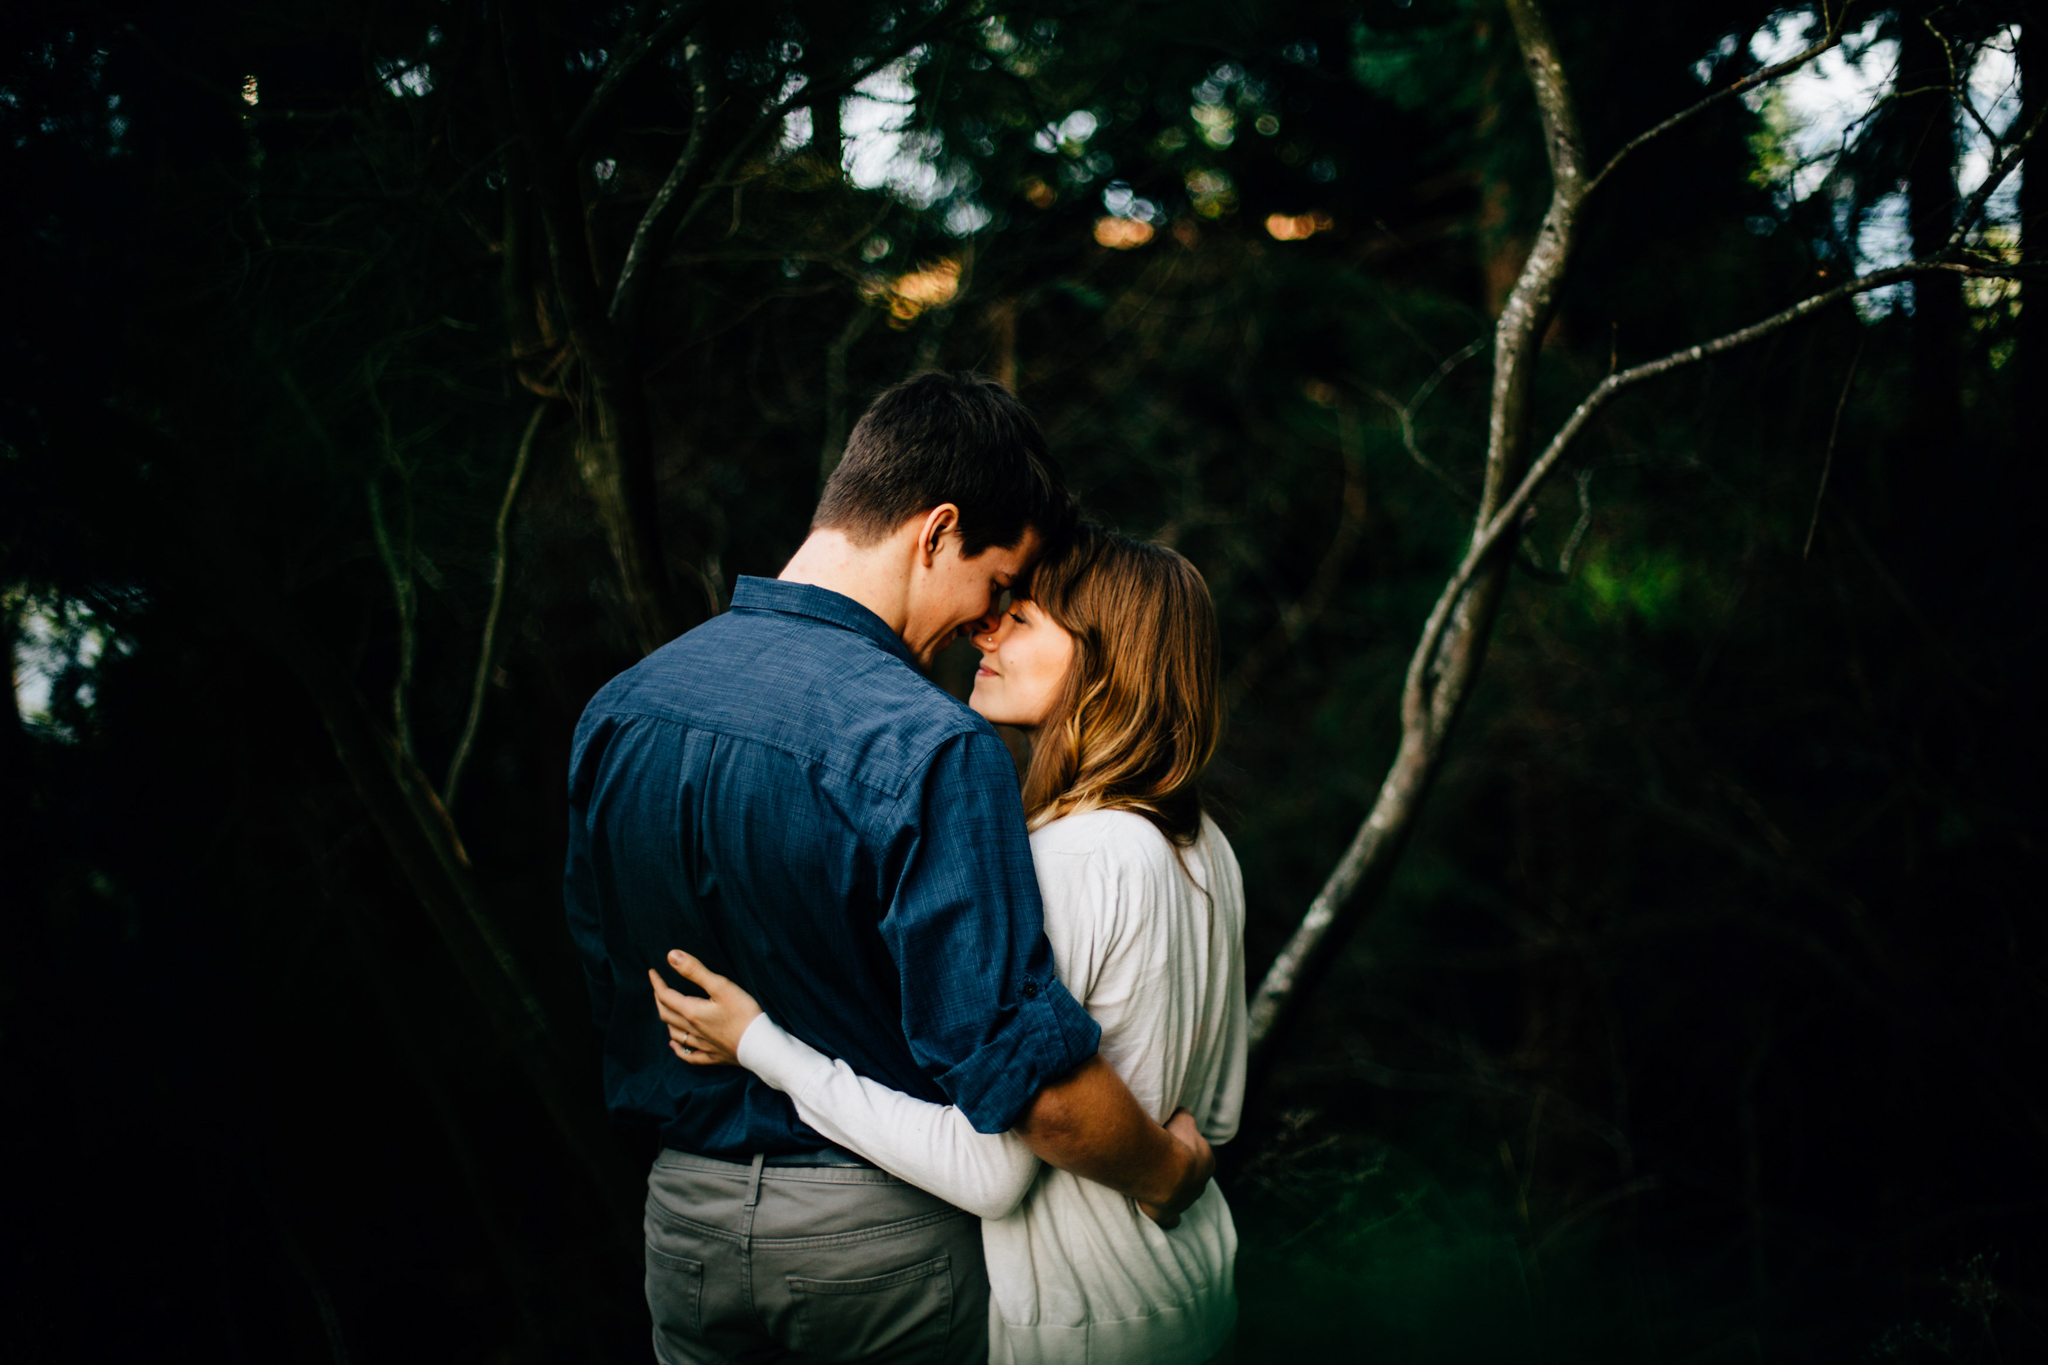 Vancouver Whytecliff Park Engagement Photographer - Emmy Lou Virginia Photography-3.jpg